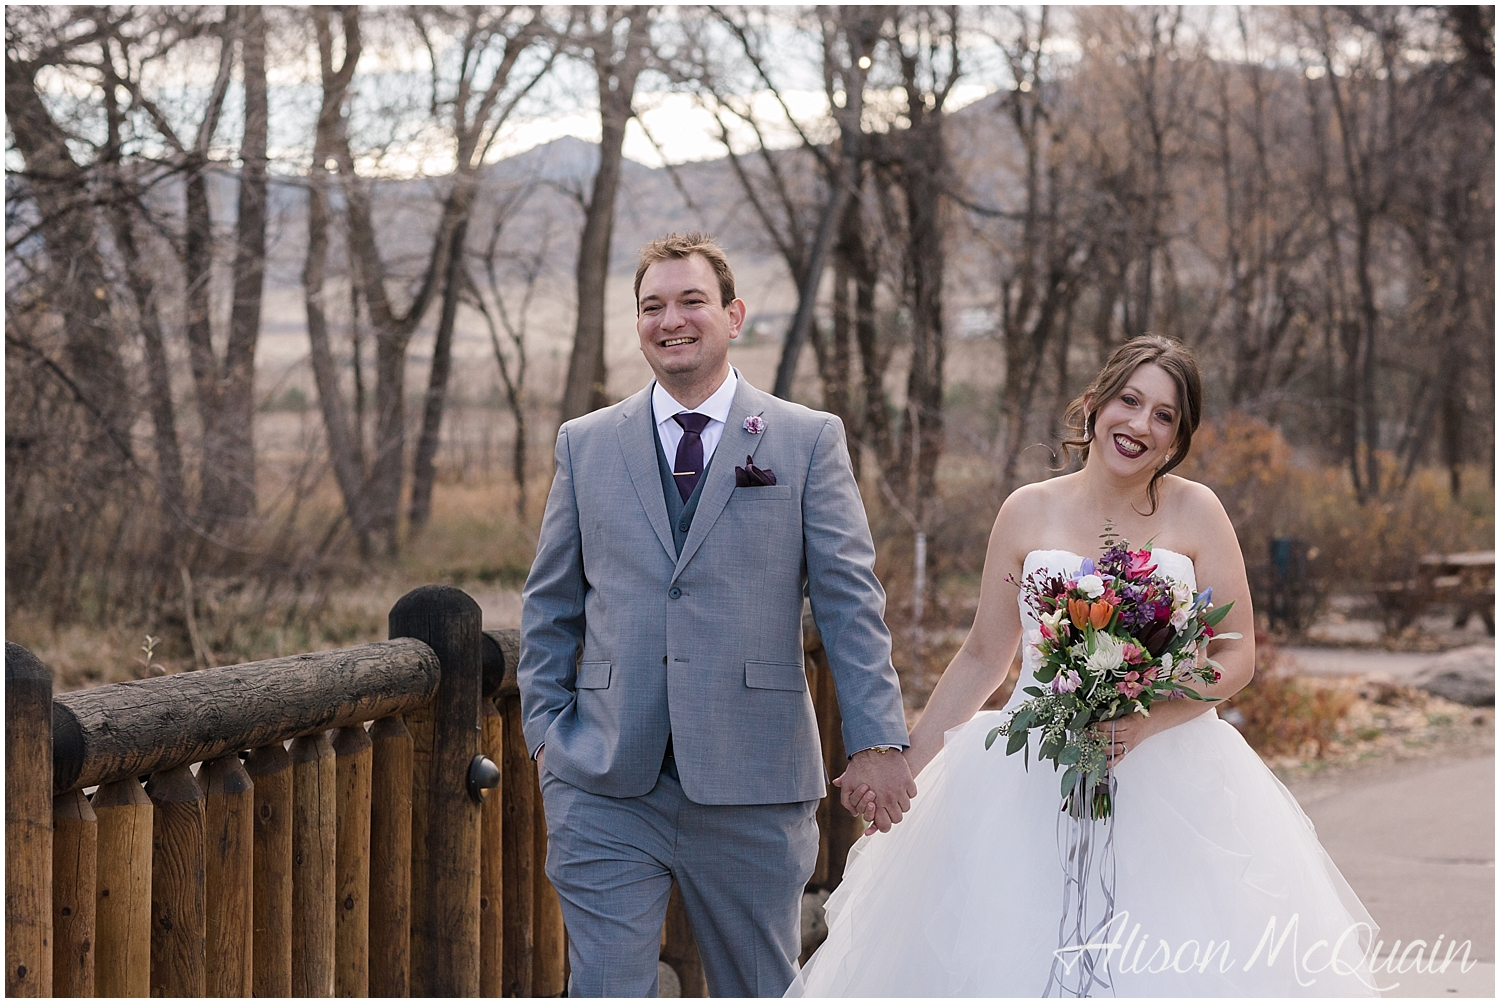 Zako_Wedding_ChatfieldFarm_Denver_Fall_2018_AlisonMcQuainPhotography_0008.jpg